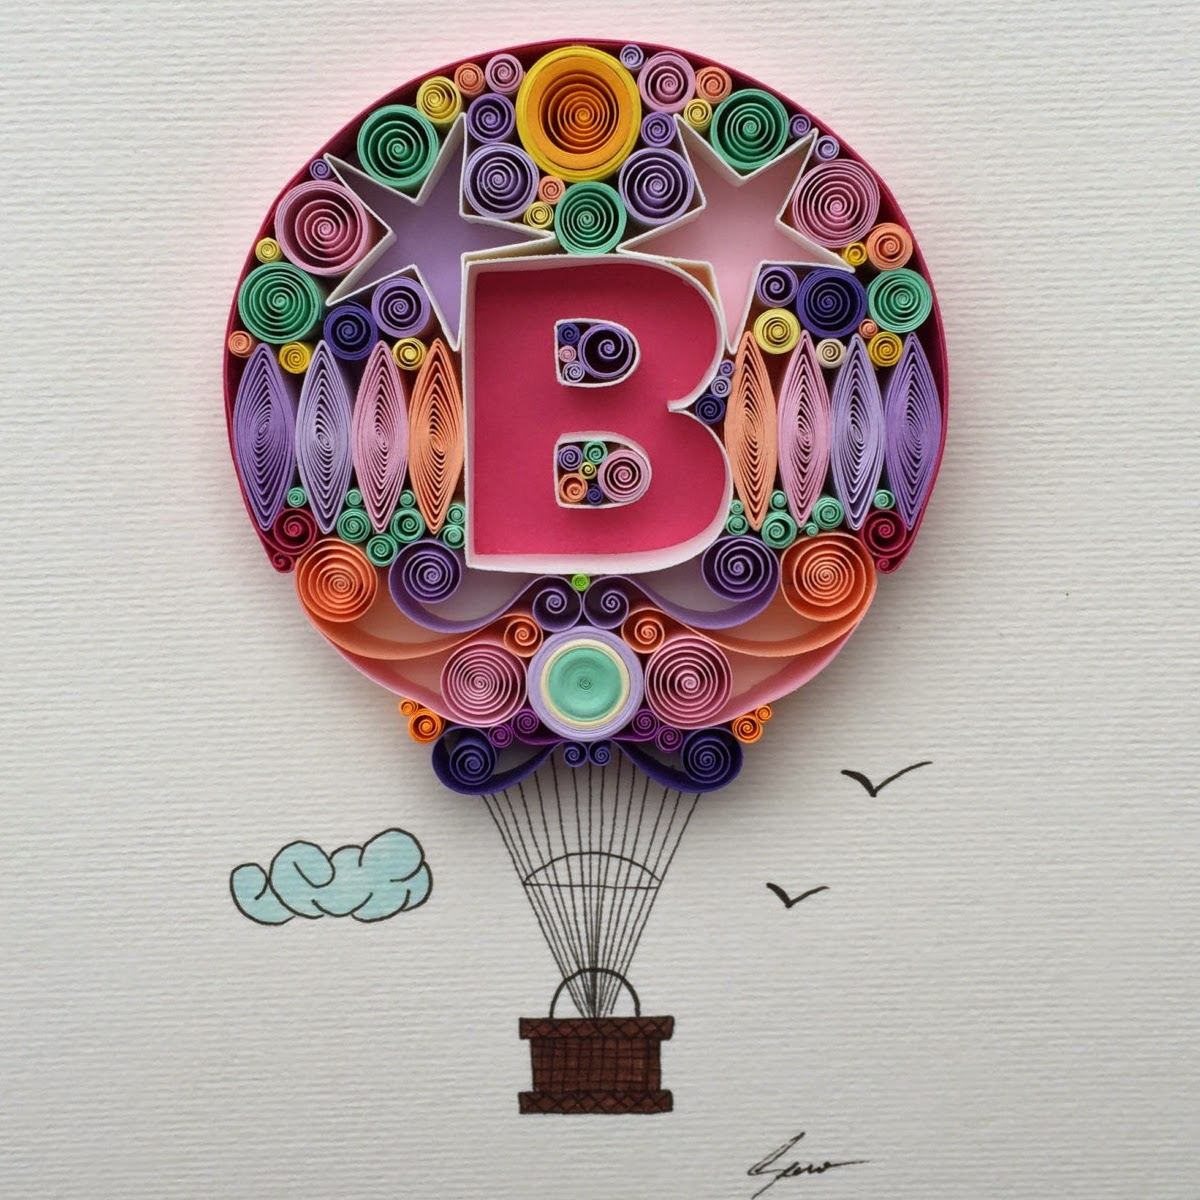 15-I-Can-Fly-Sena-Runa-Drawing-and-Quilling-a-match-made-in-Heaven-www-designstack-co